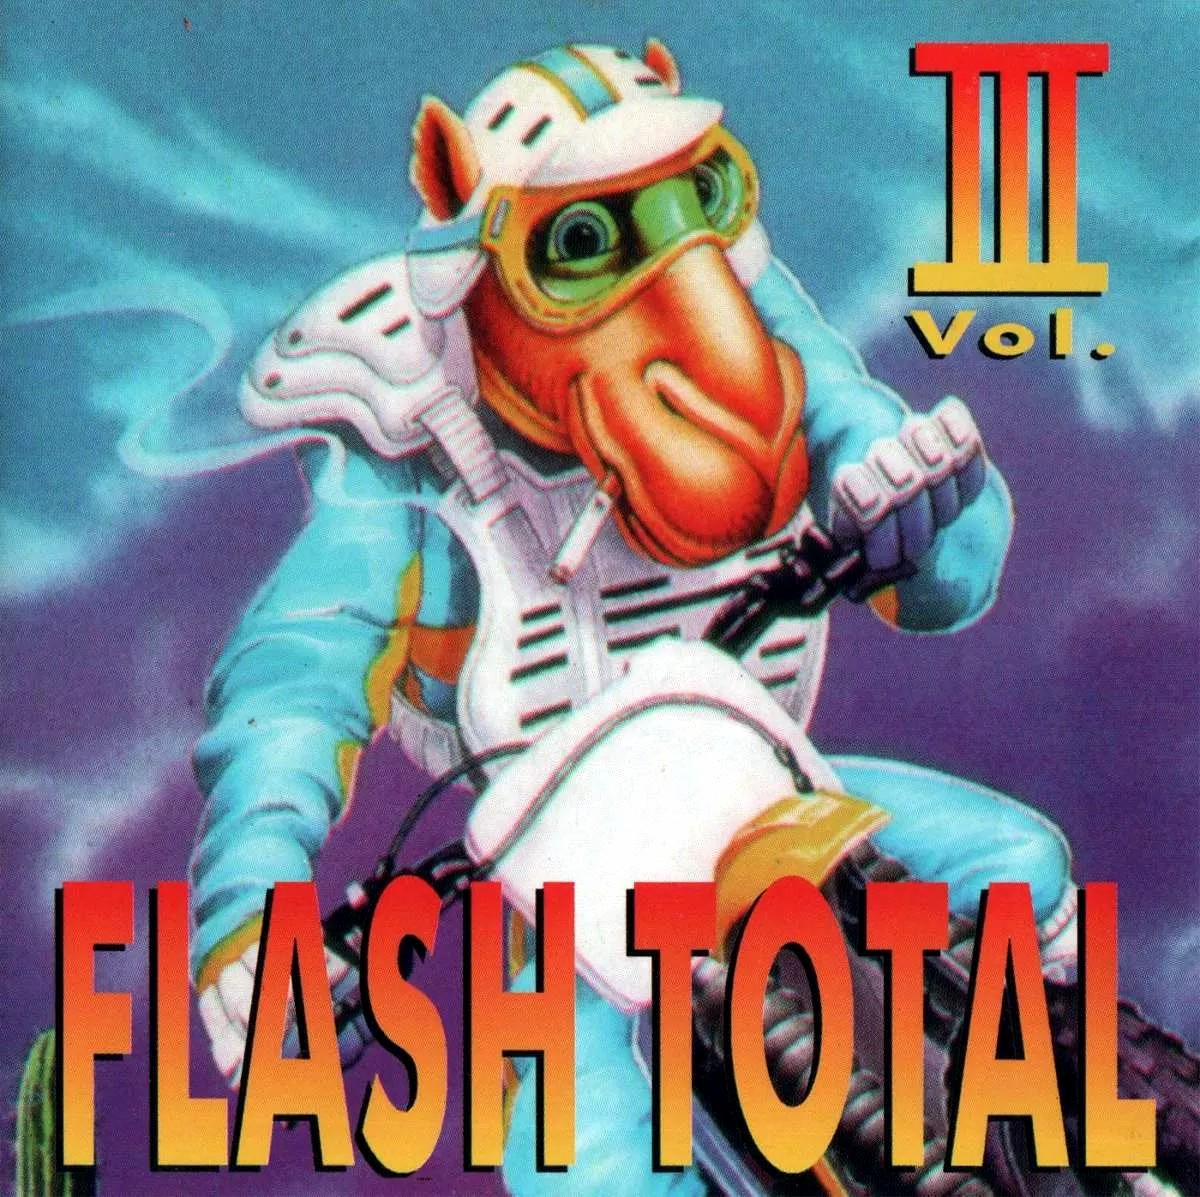 Flash Total Volume 3 (CD-1997)